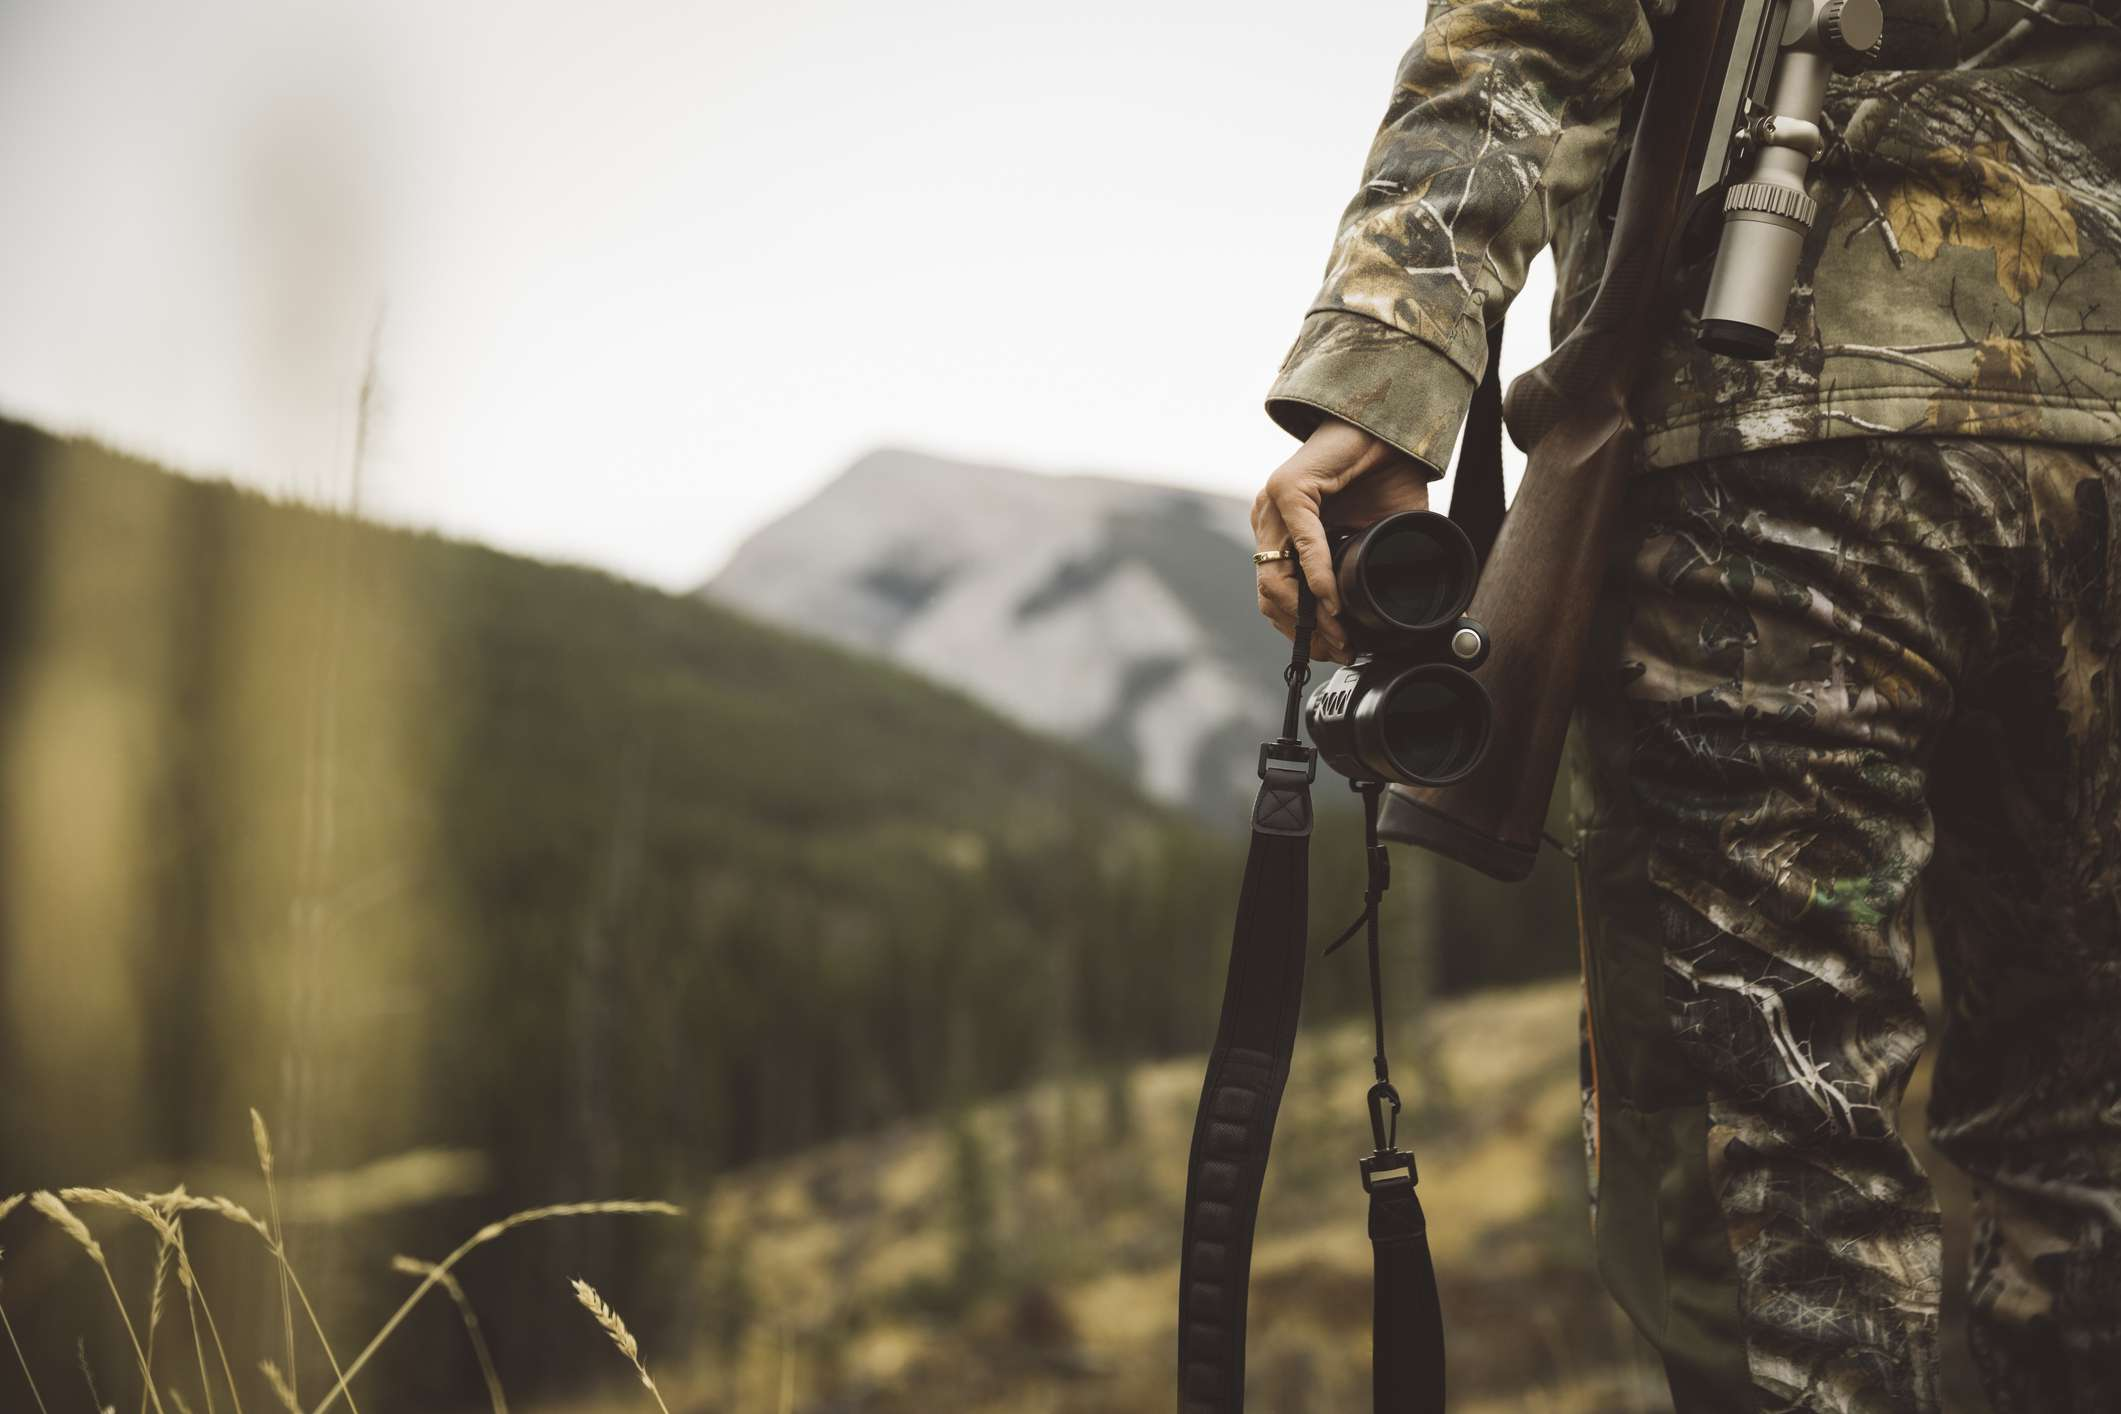 Female hunter in camouflage carrying binoculars and hunting rifle in field